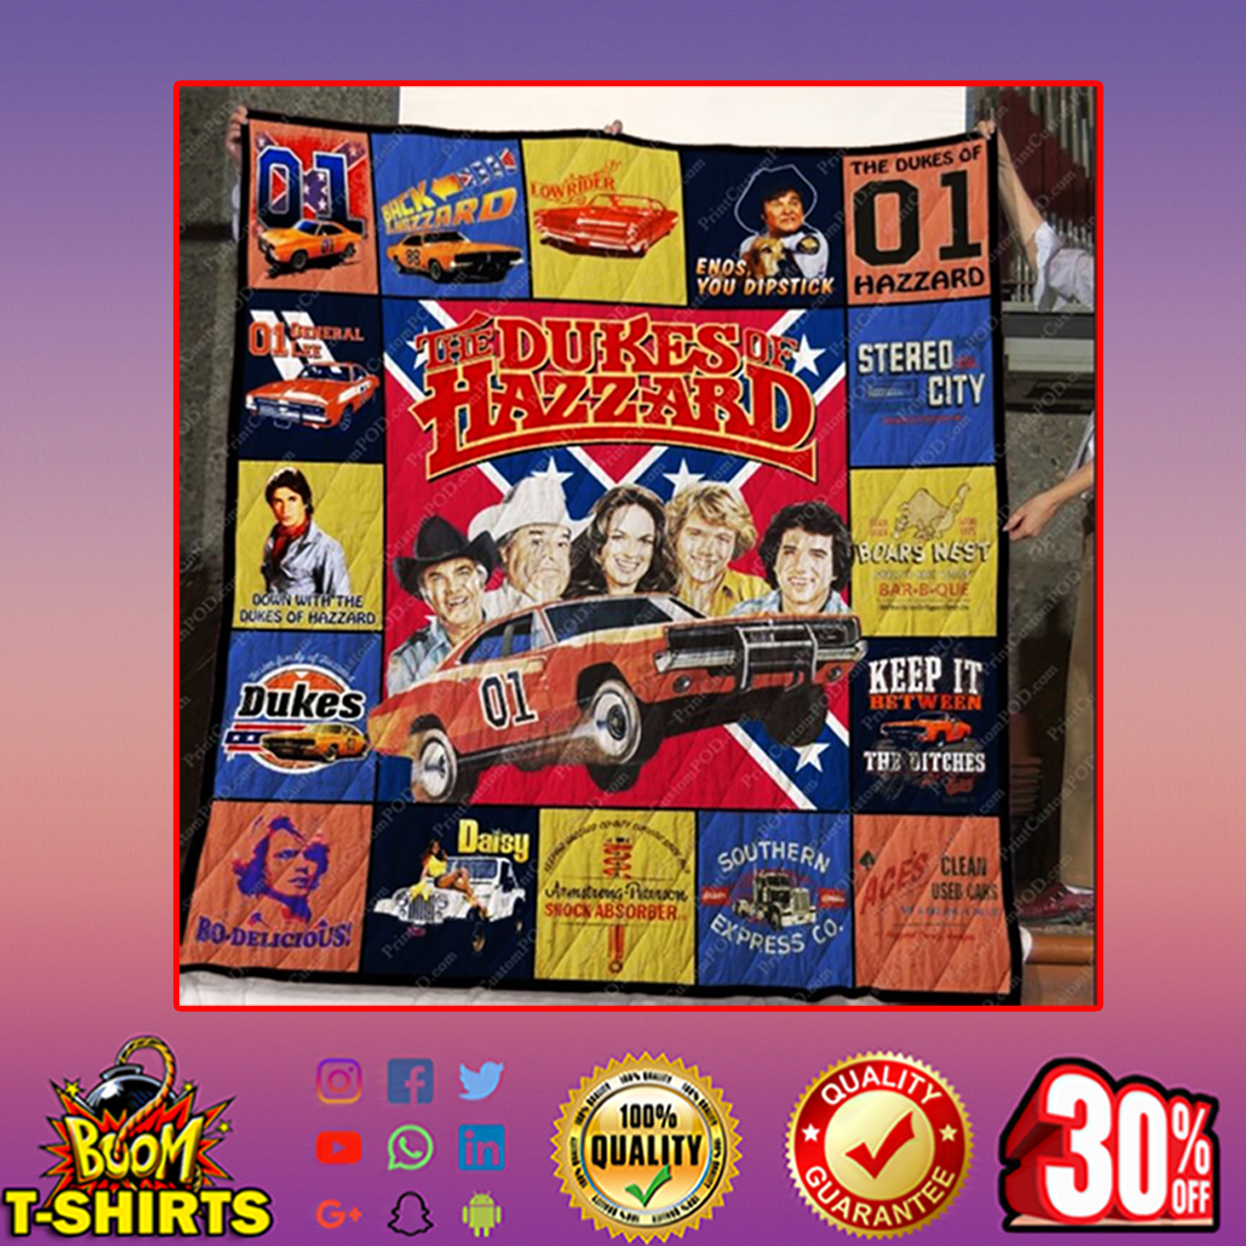 The dukes of hazzard quilt blanket - king (80x90 inches)